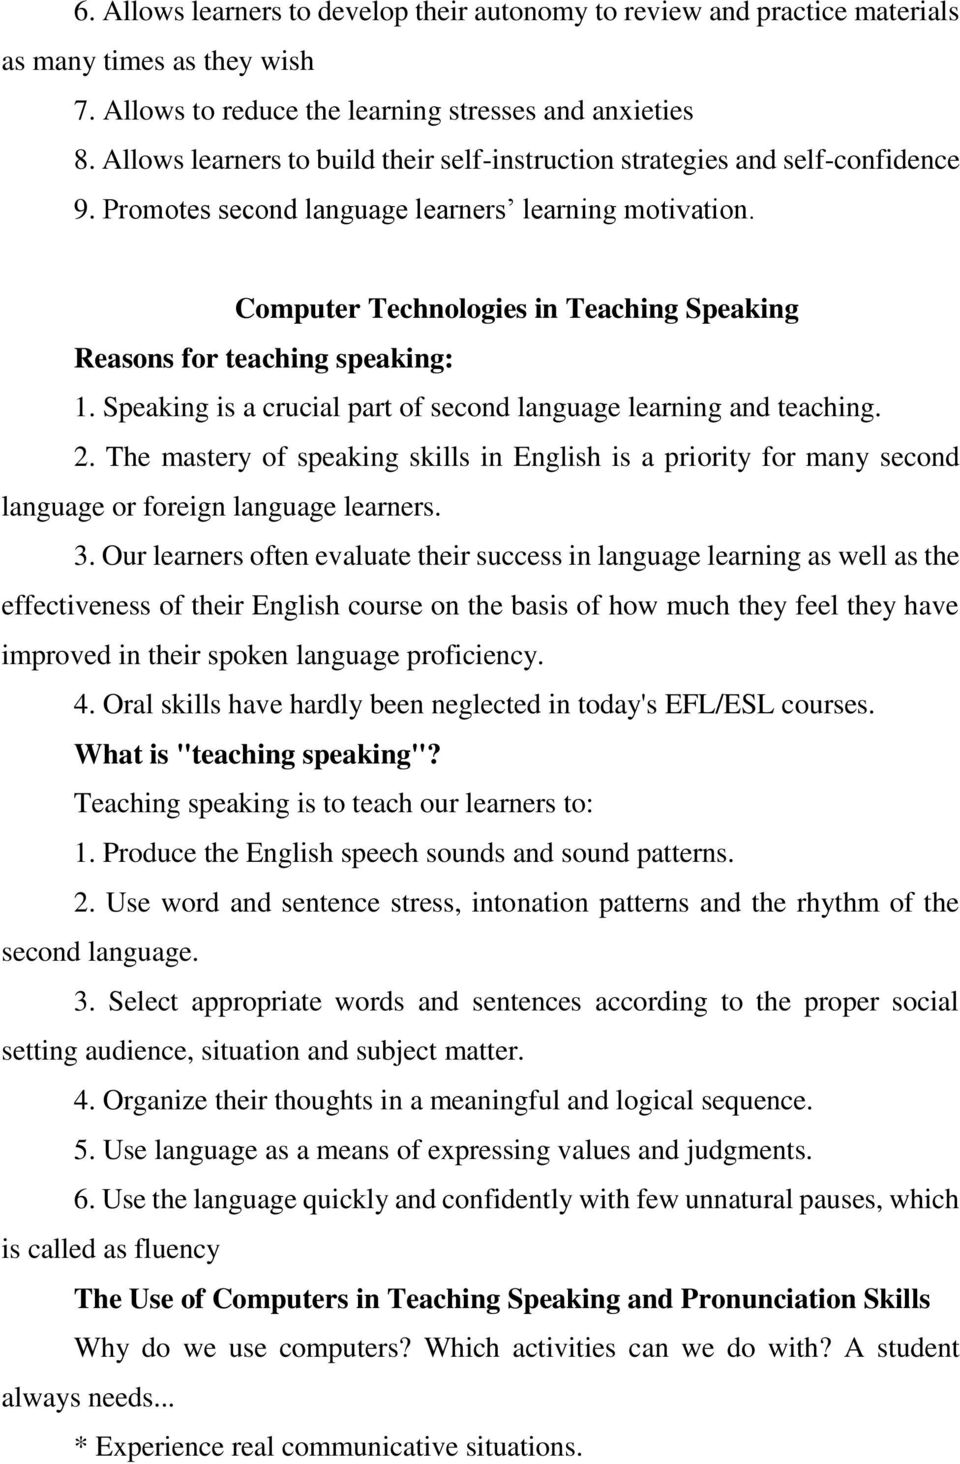 Computer Technologies in Teaching Speaking Reasons for teaching speaking: 1. Speaking is a crucial part of second language learning and teaching. 2.